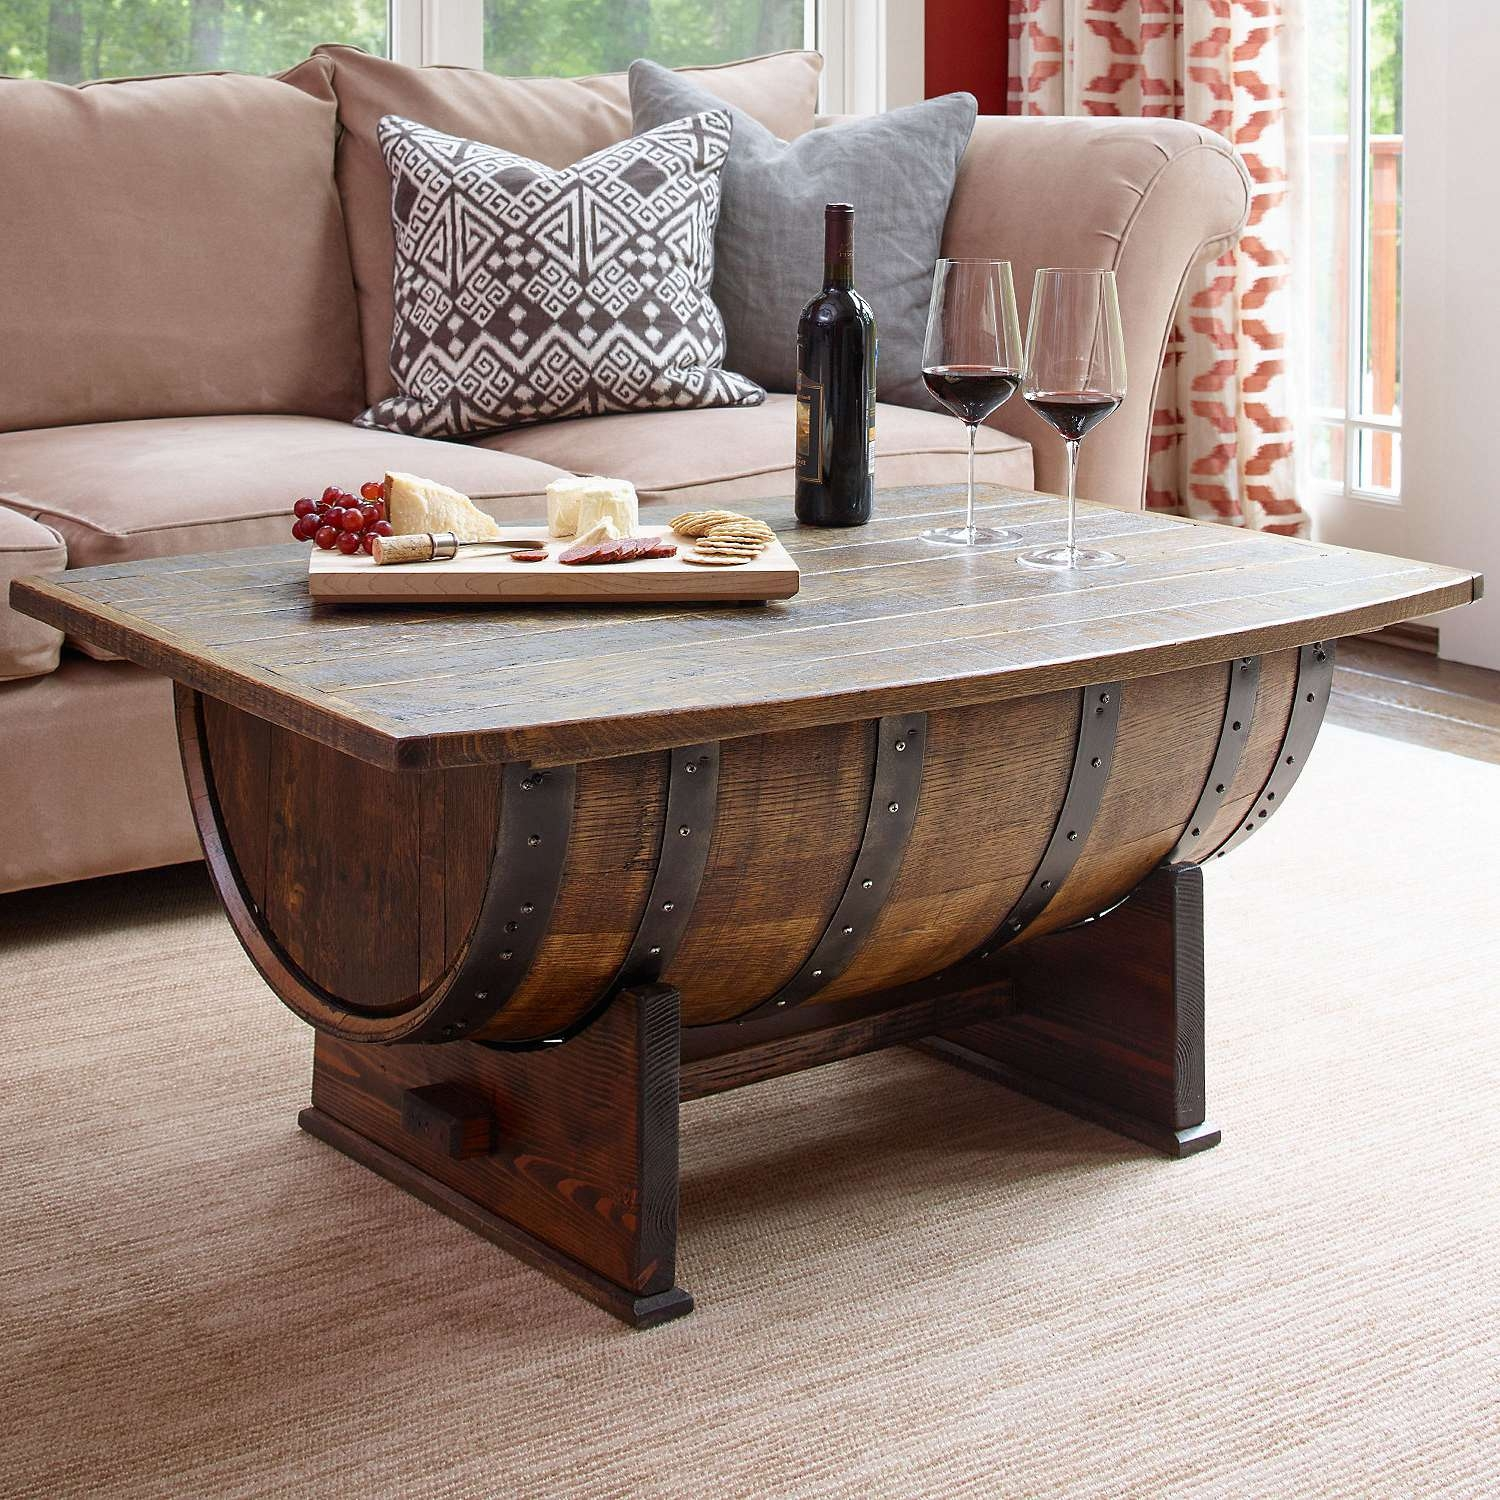 Handmade Vintage Oak Whiskey Barrel Coffee Table – Wine Enthusiast With 2018 Retro Oak Coffee Tables (View 13 of 20)